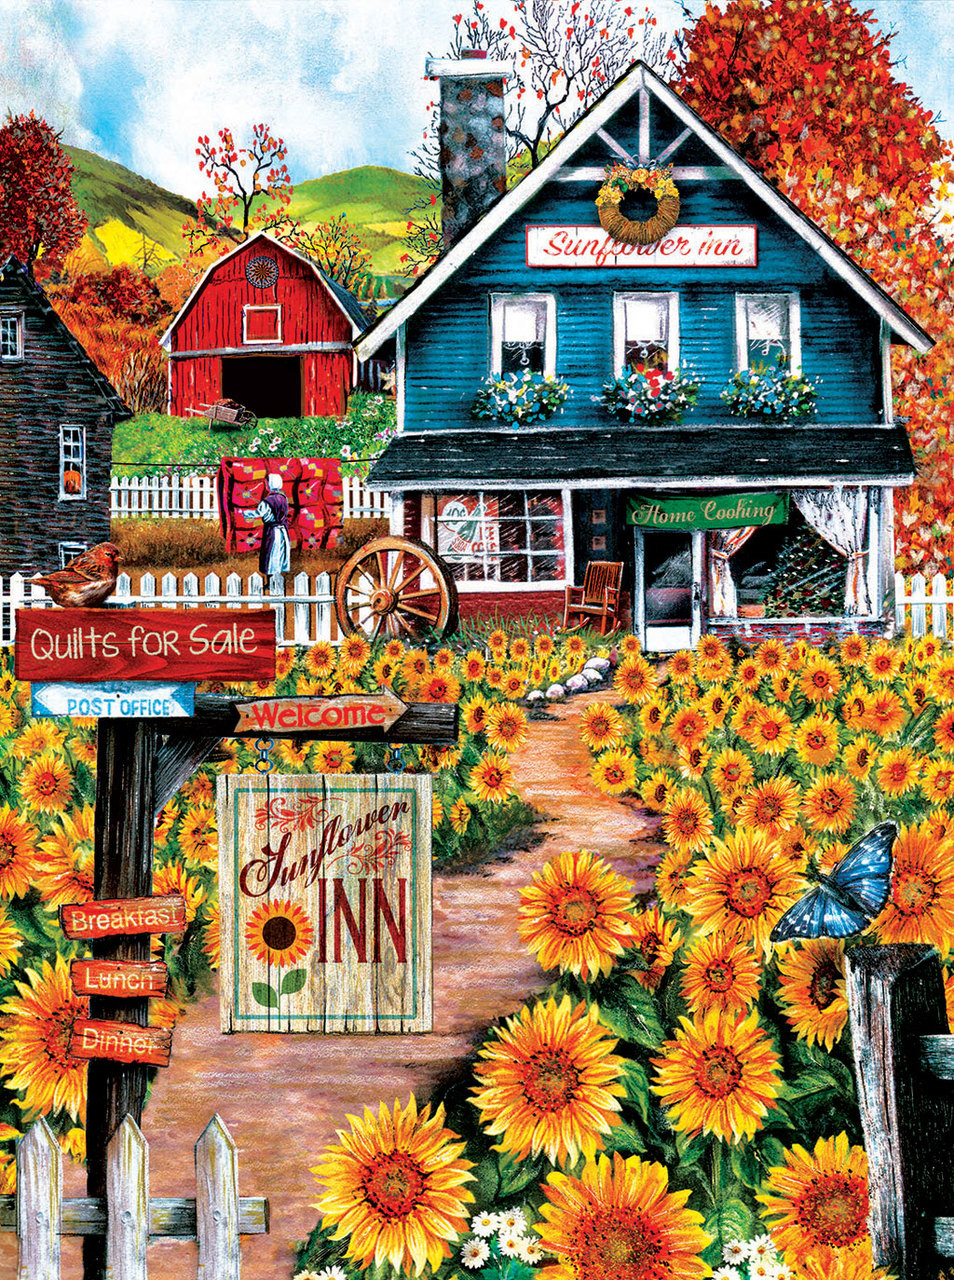 At The Sunflower Inn 1000pc Jigsaw Puzzle By Sunsout